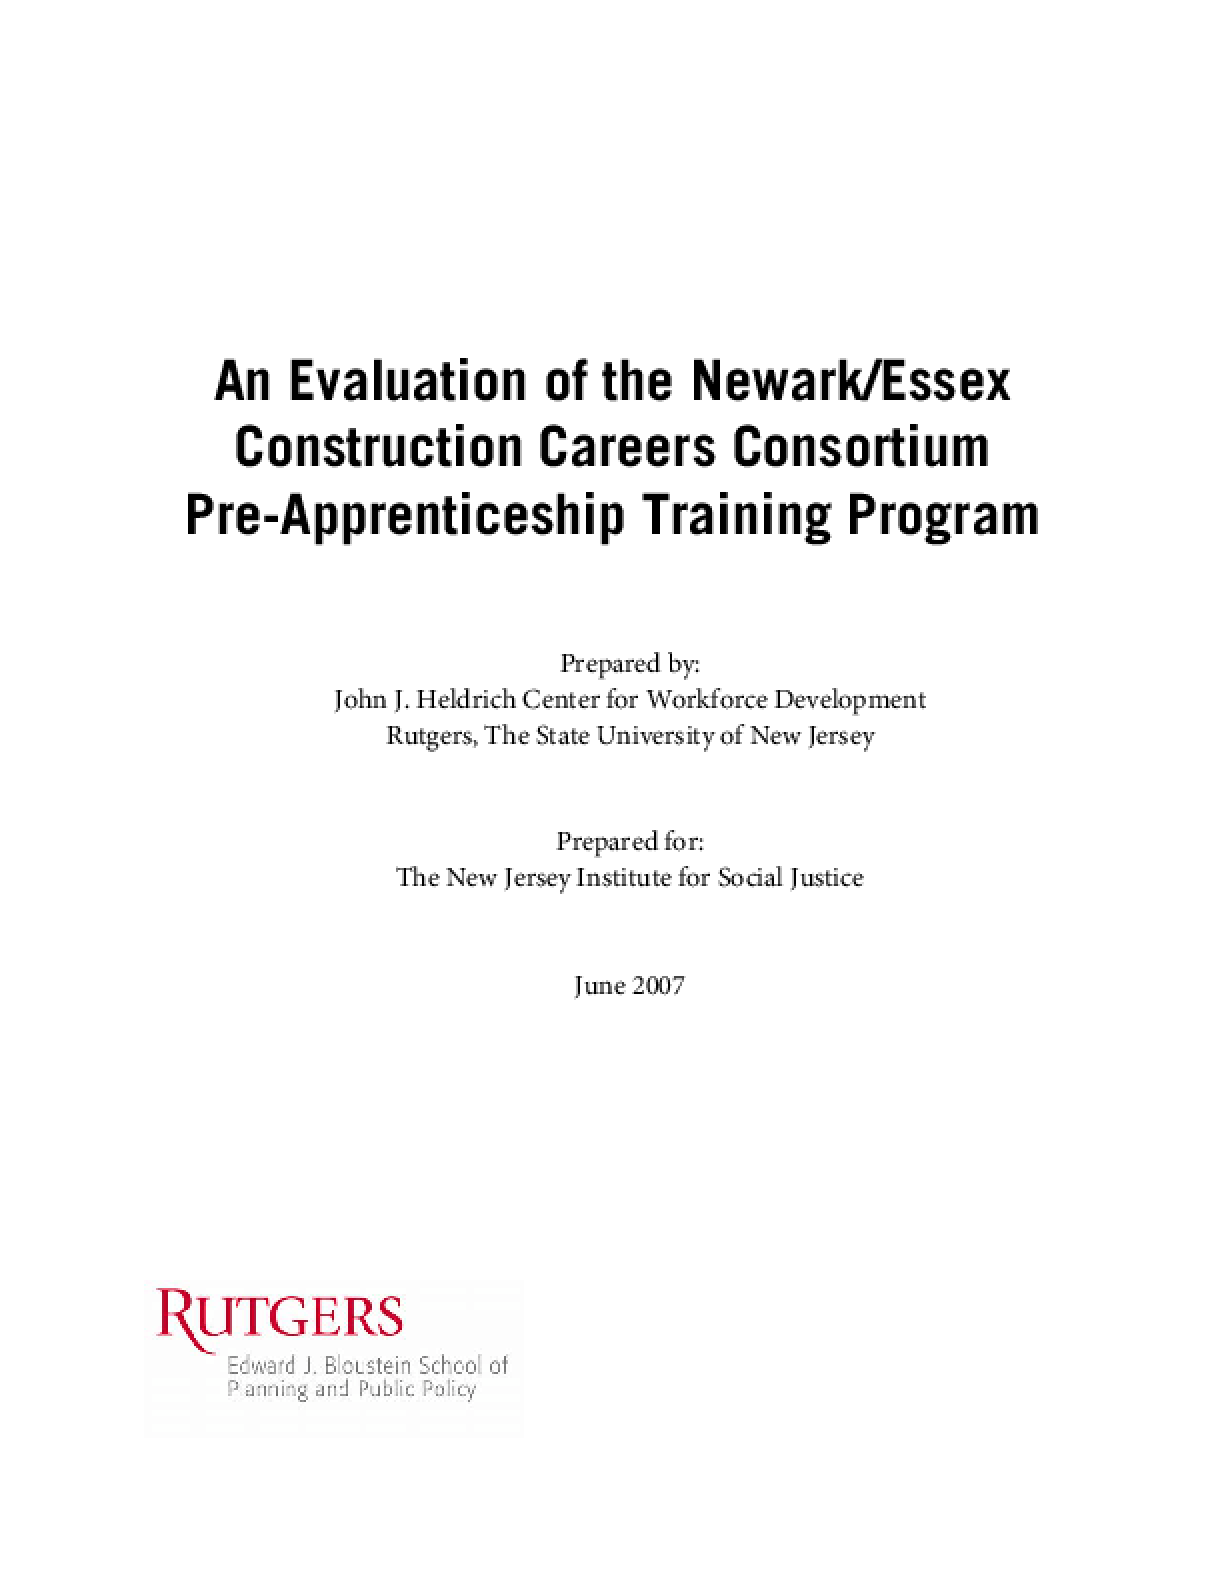 An Evaluation of the Newark/Essex Construction Careers Consortium